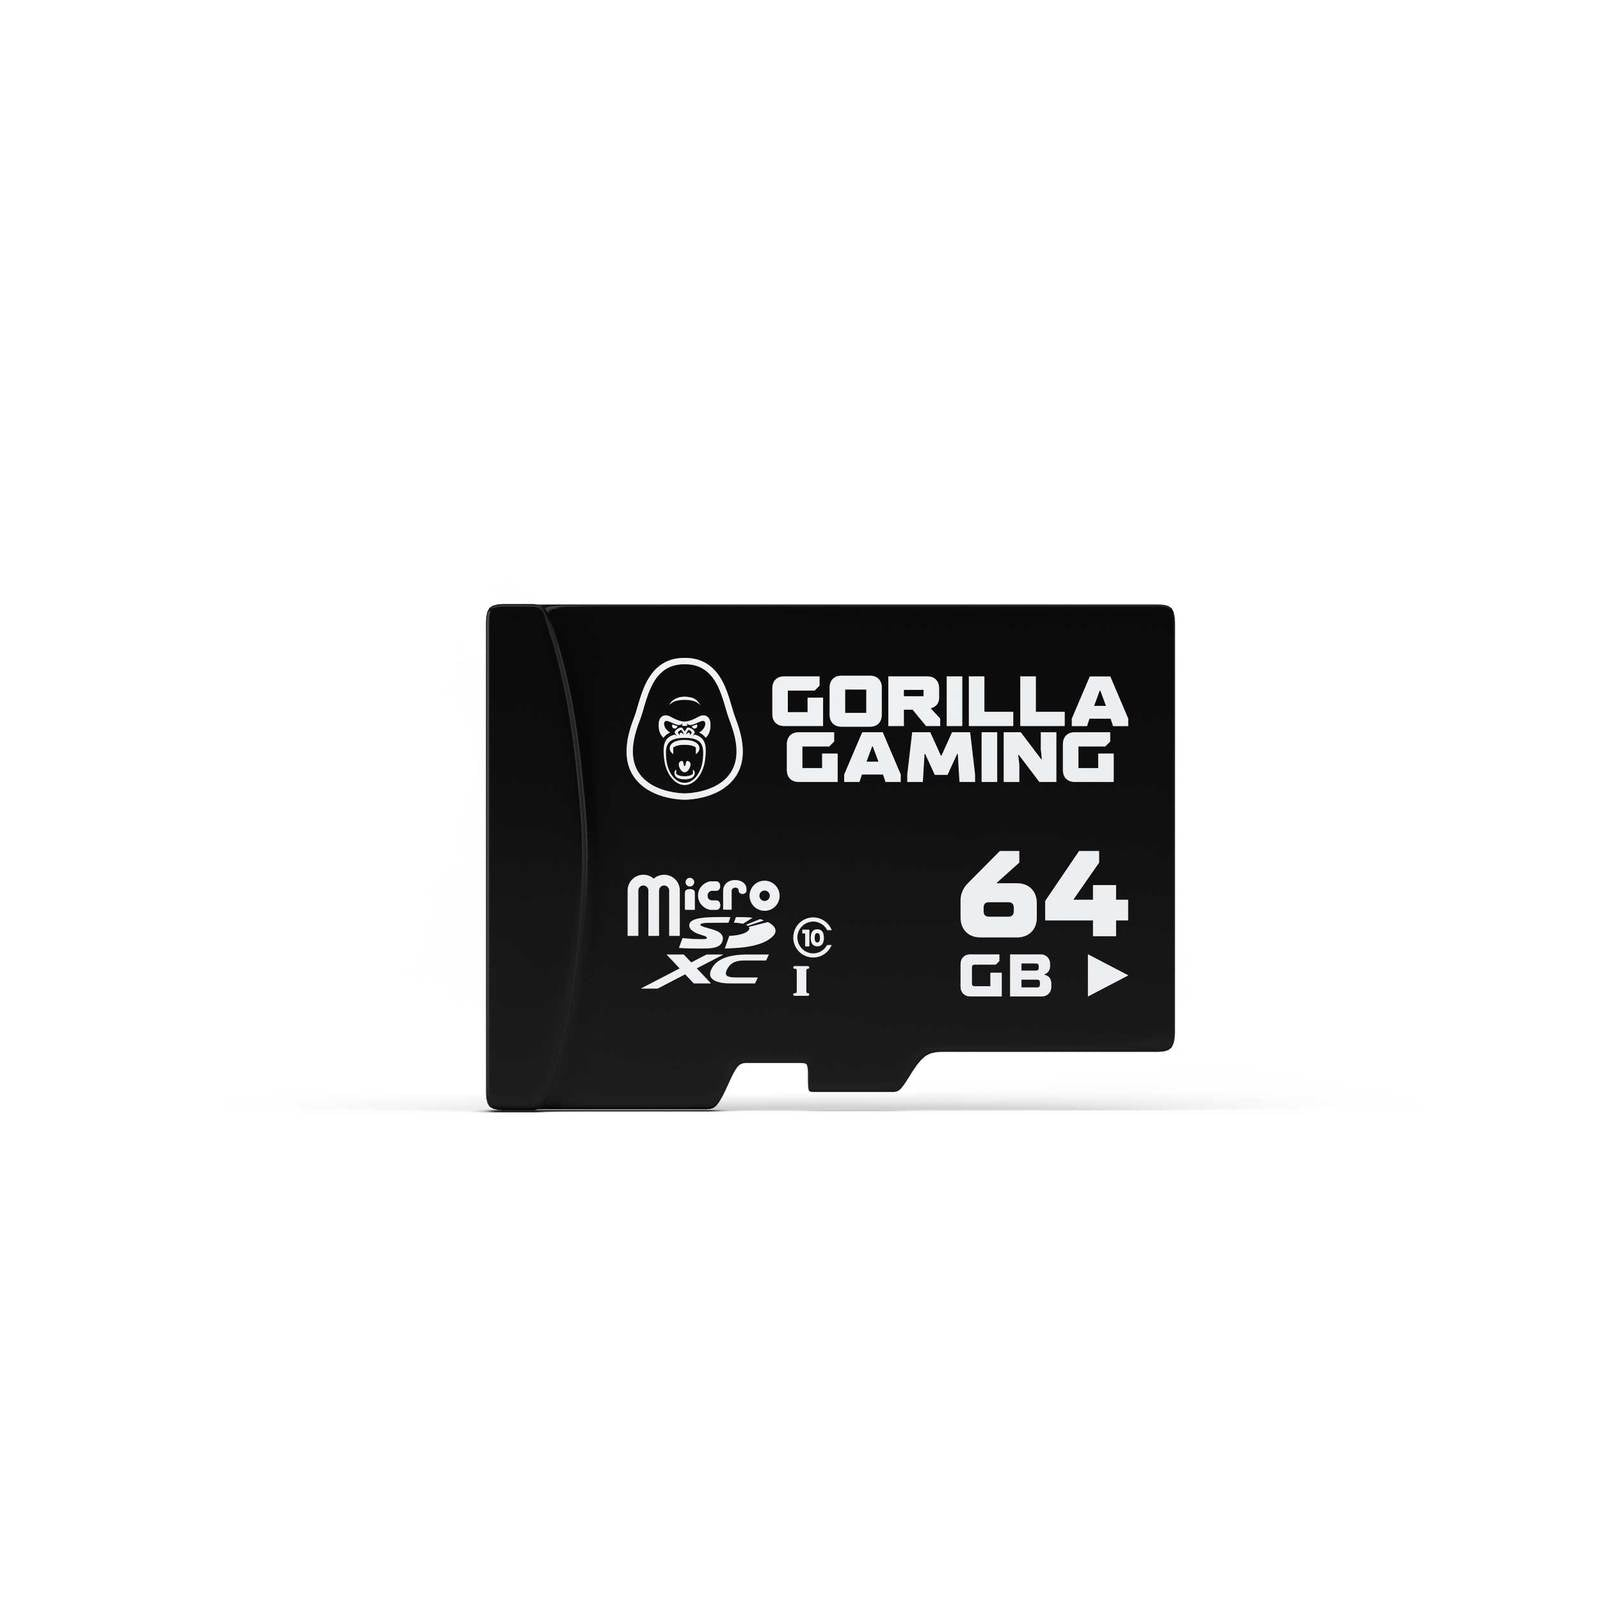 Gorilla Gaming Switch 64GB Memory Card - Nintendo Switch